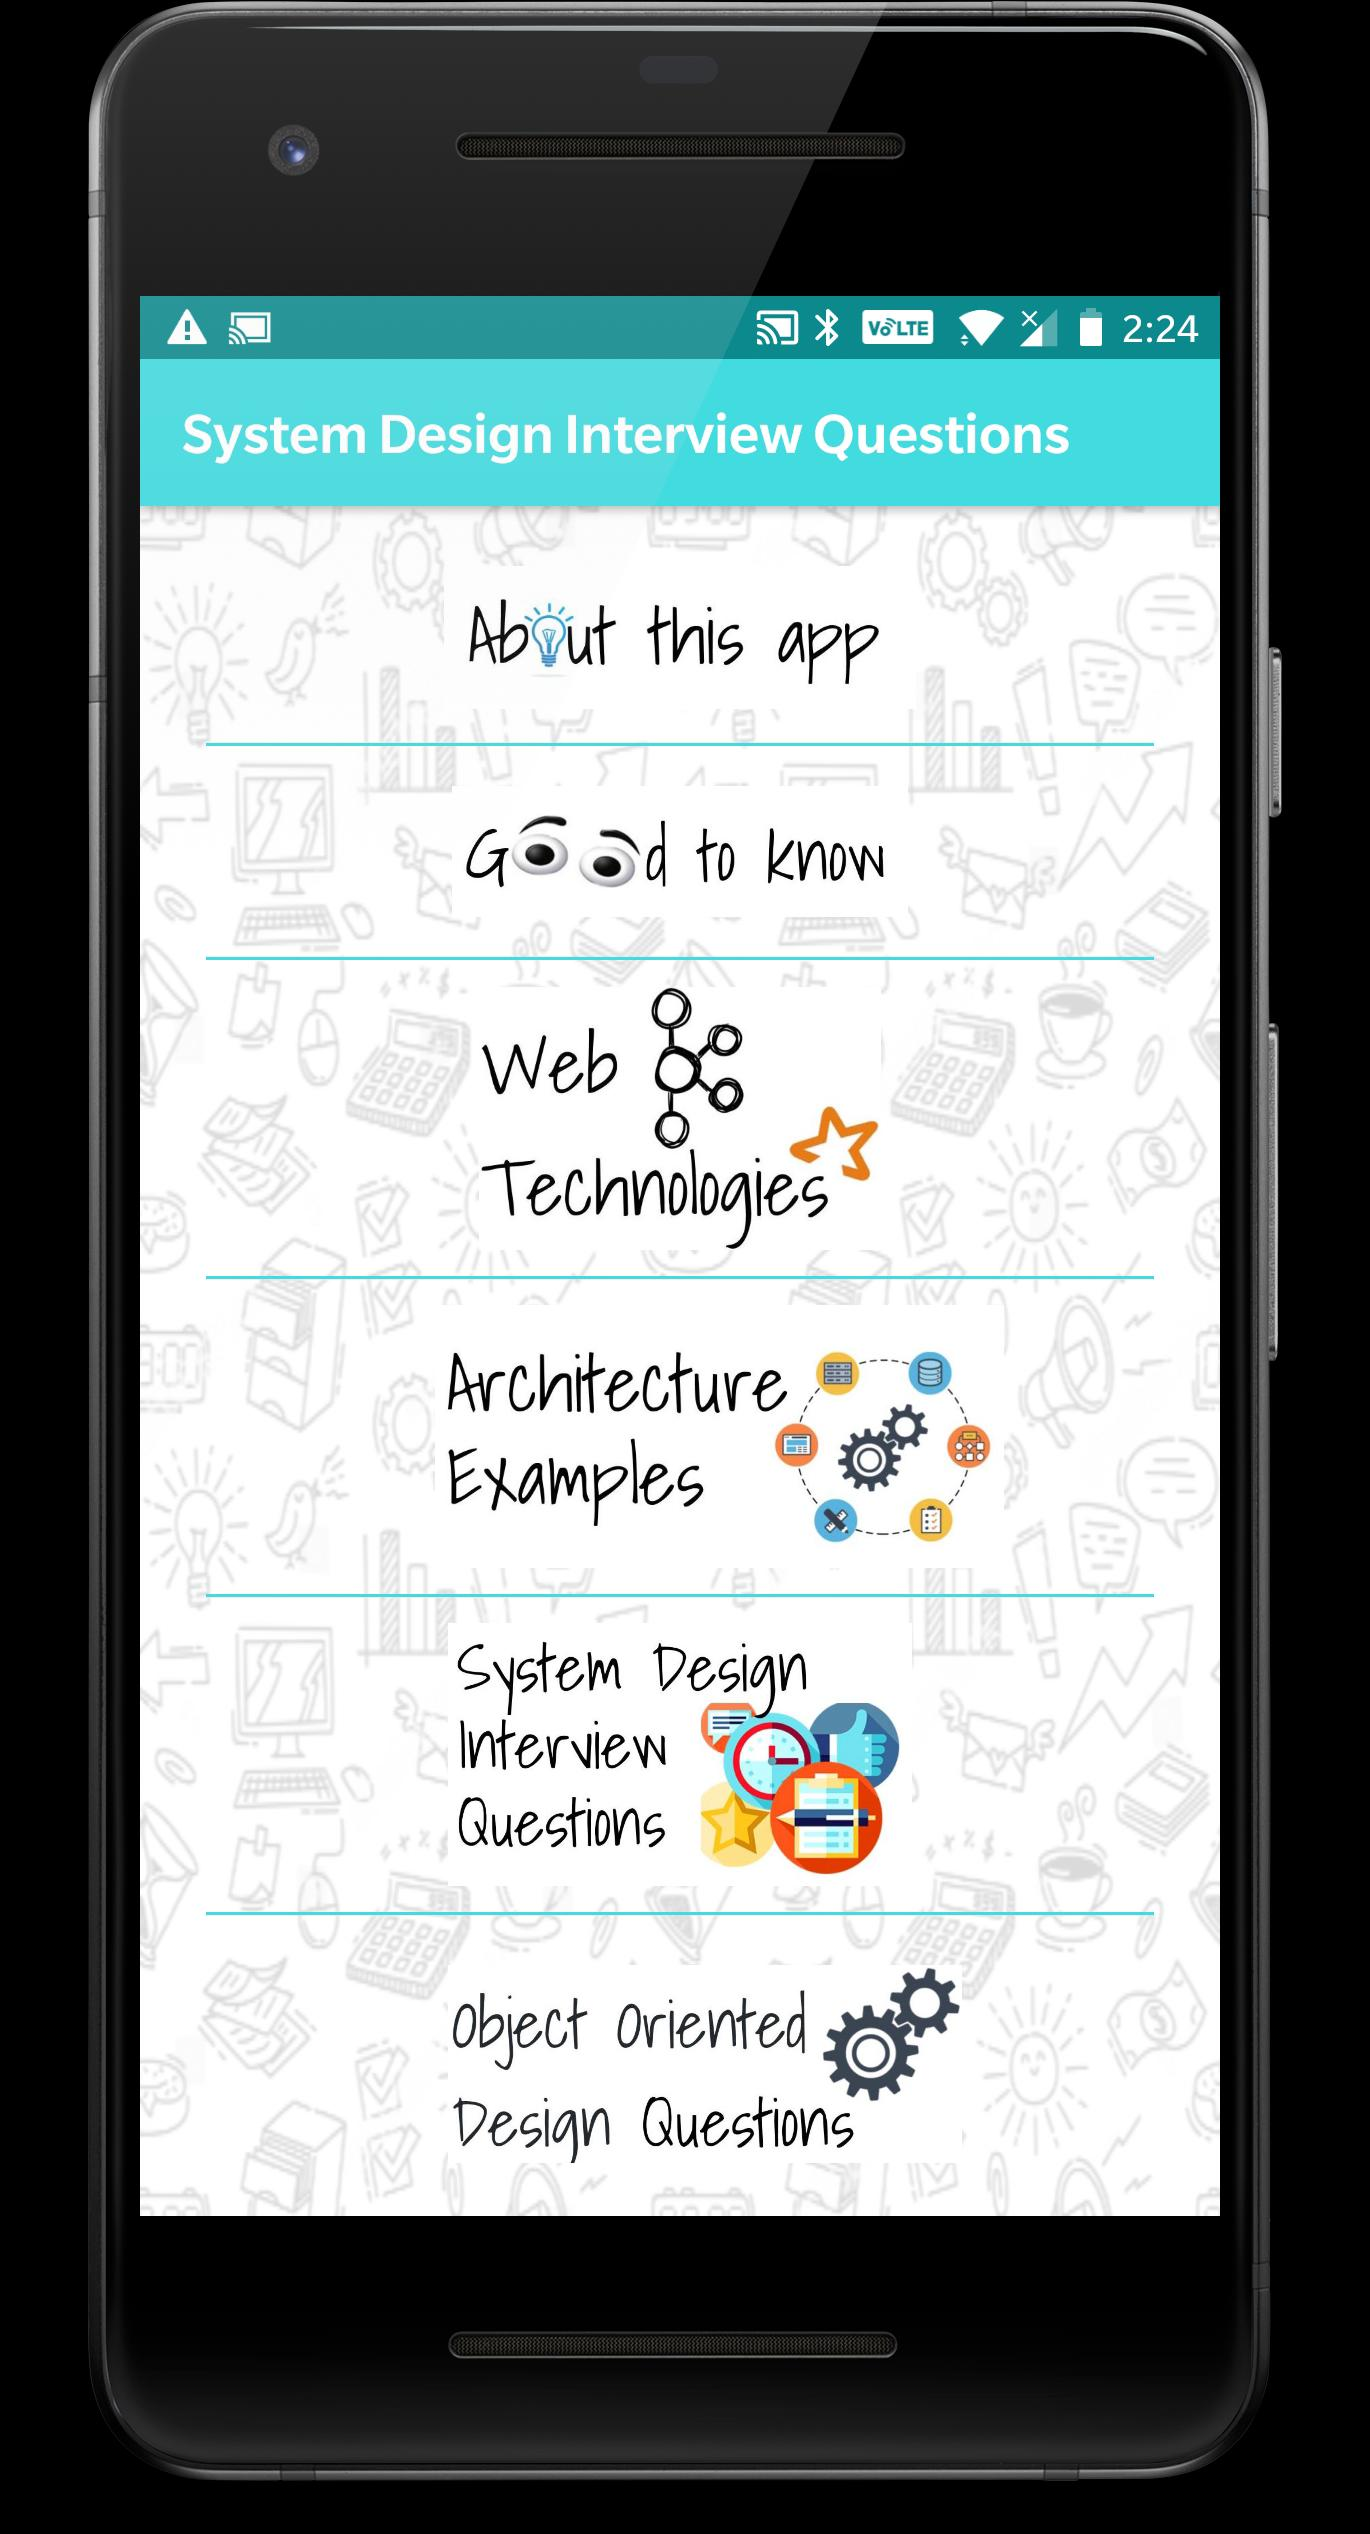 System Design Interview Questions for Android - APK Download